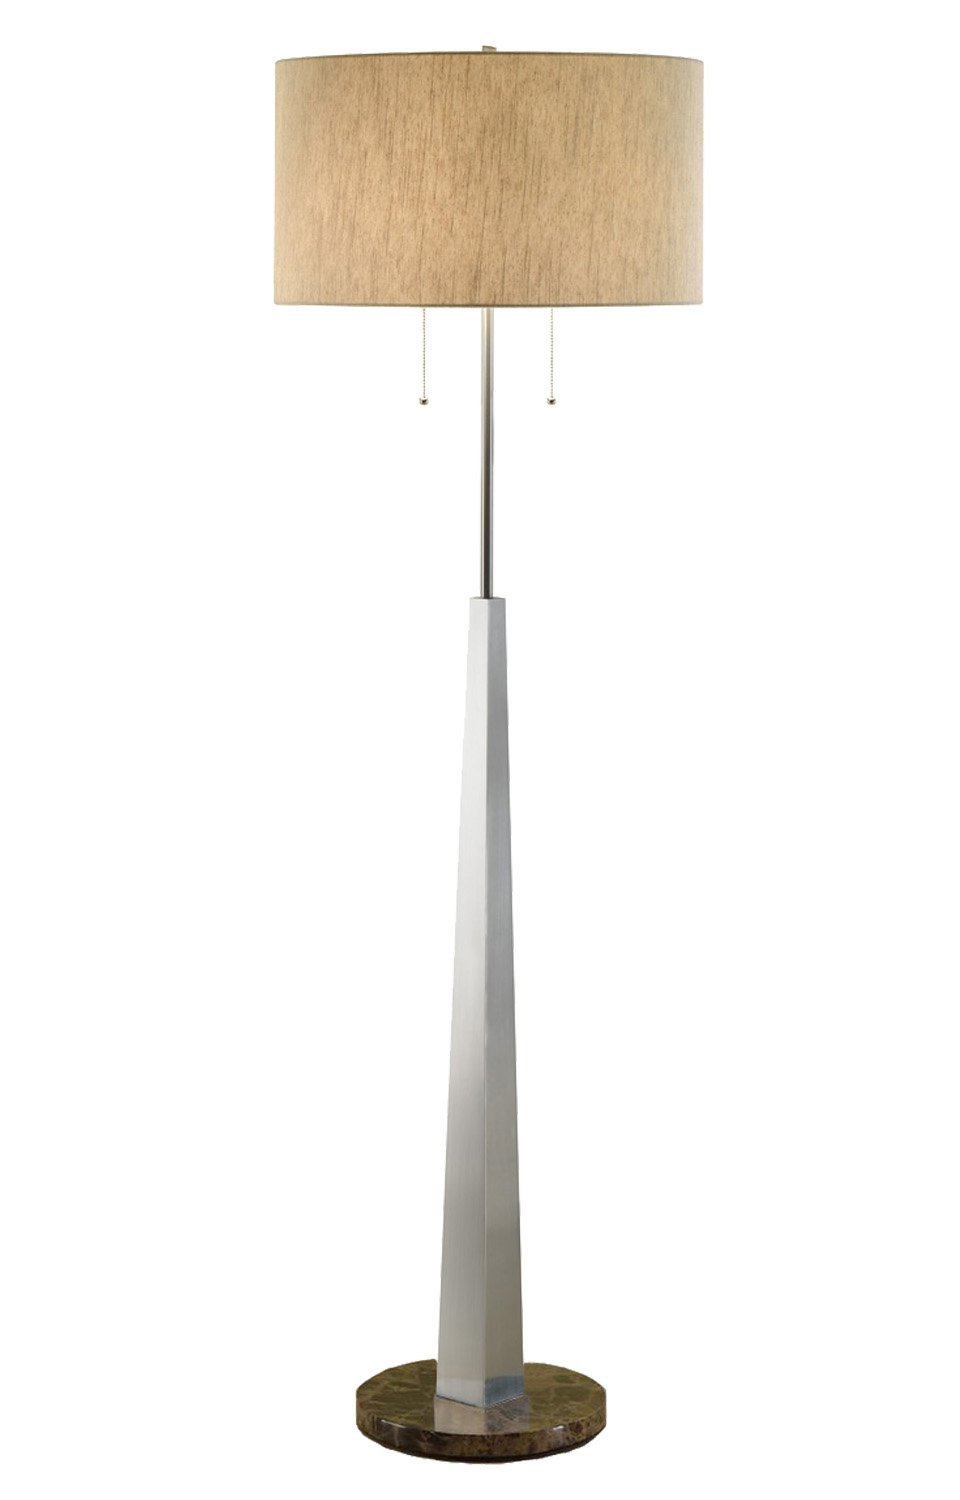 Artiva USA Luxor, Contemporary Design, 68-Inch Square-tapered Brushed Steel Floor Lamp with Marble Base and Rounded Tan Shade